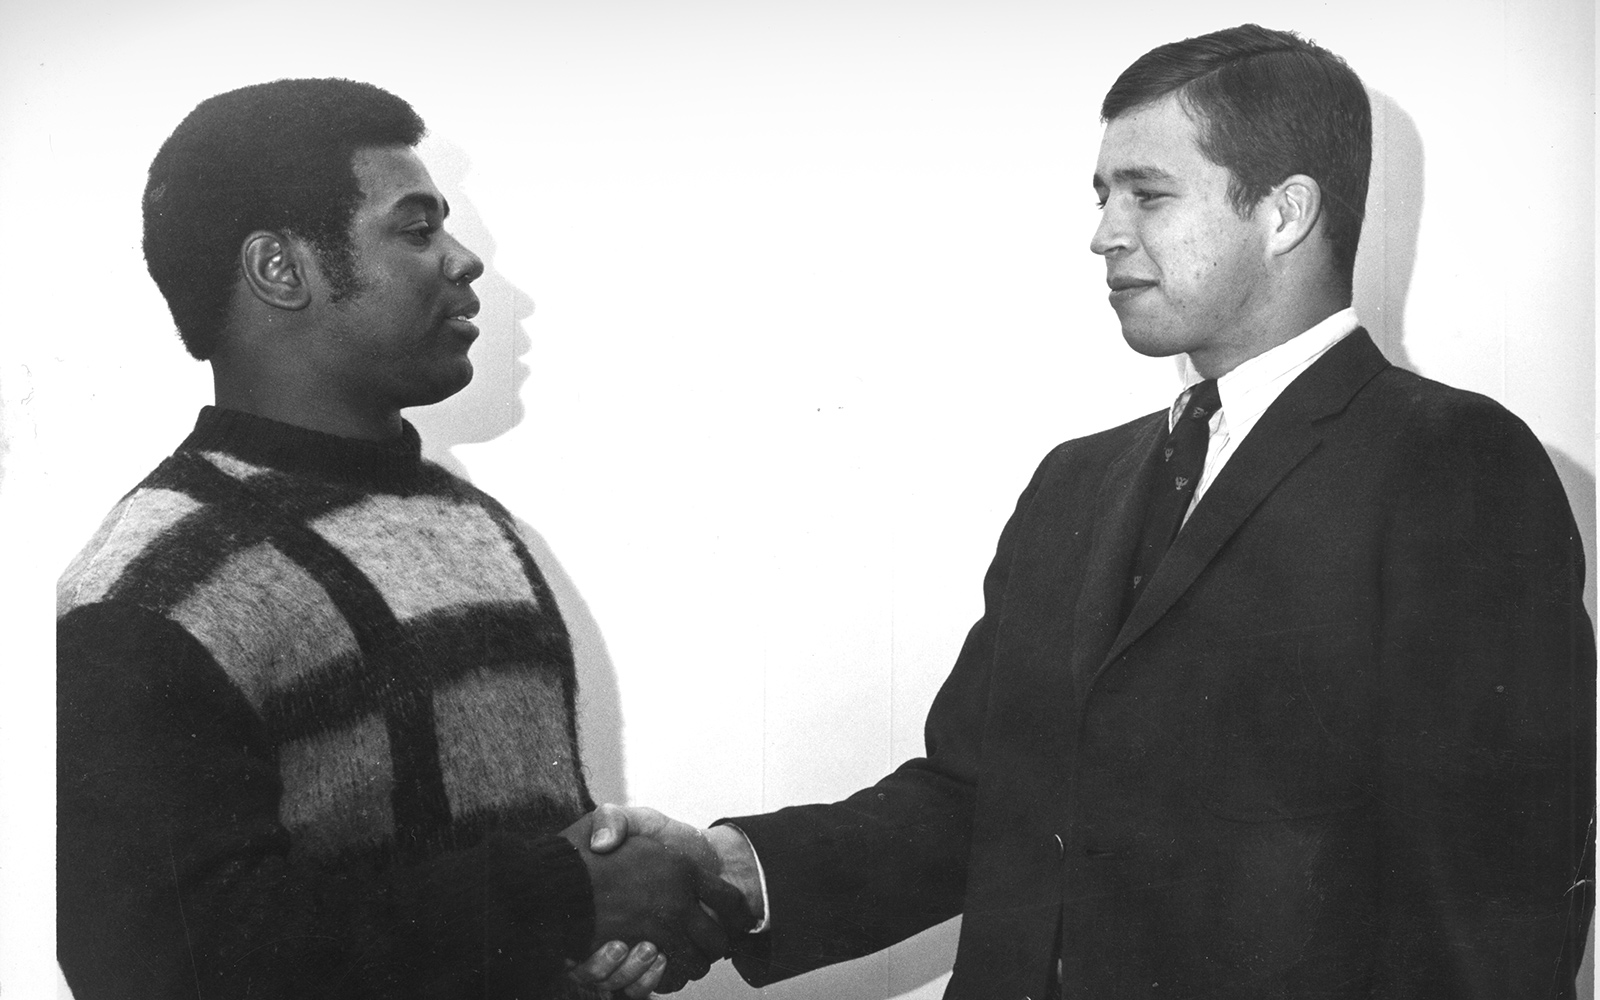 Henry Durand '70, who died in 2018, and Scott Trumbull '70 were teammates on Denison's football team. They would go on to work together for the betterment of the college after graduation. Durand became the president of the Black Alumni Asso…